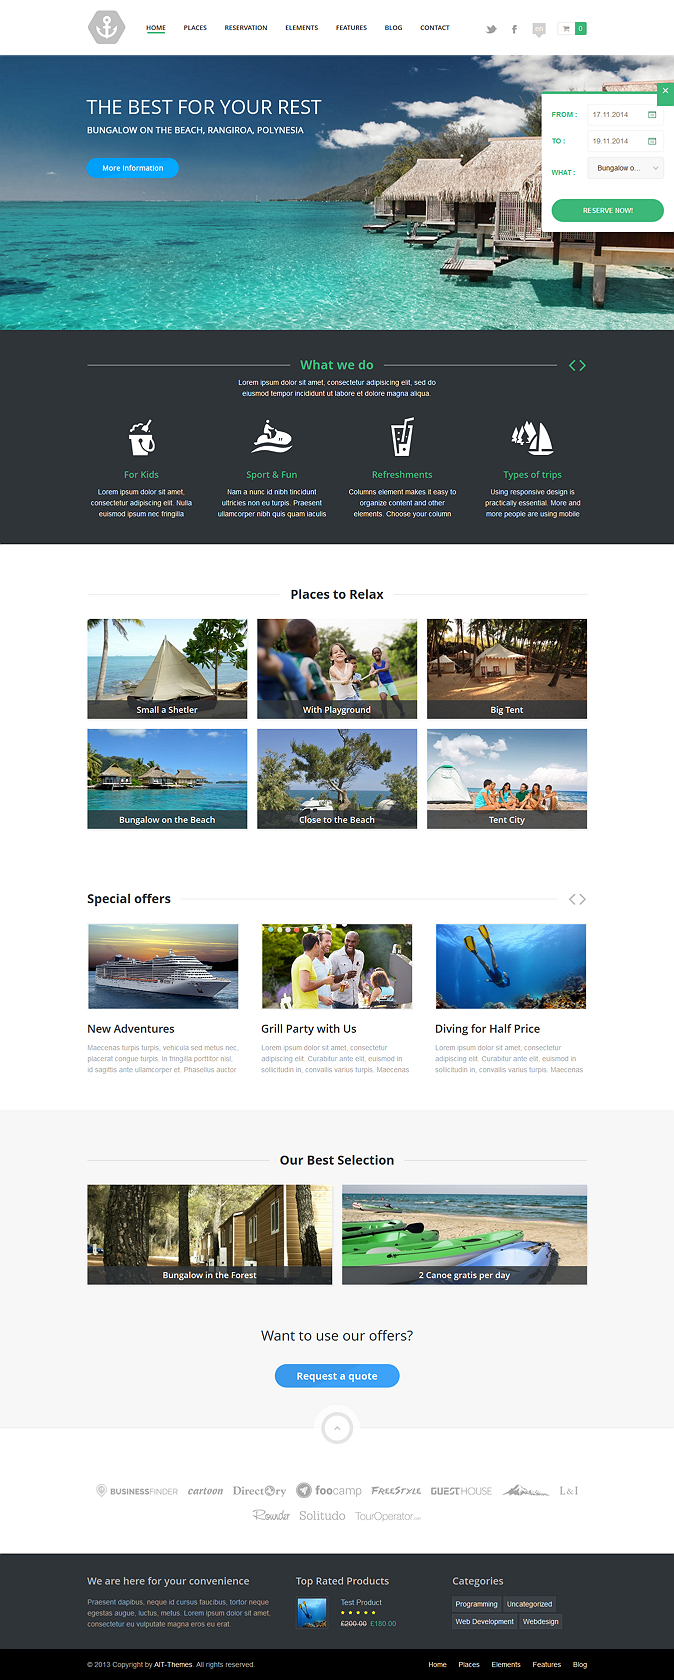 This theme has awesome full easy Reservations support system. You can use it for hotels, resorts ...